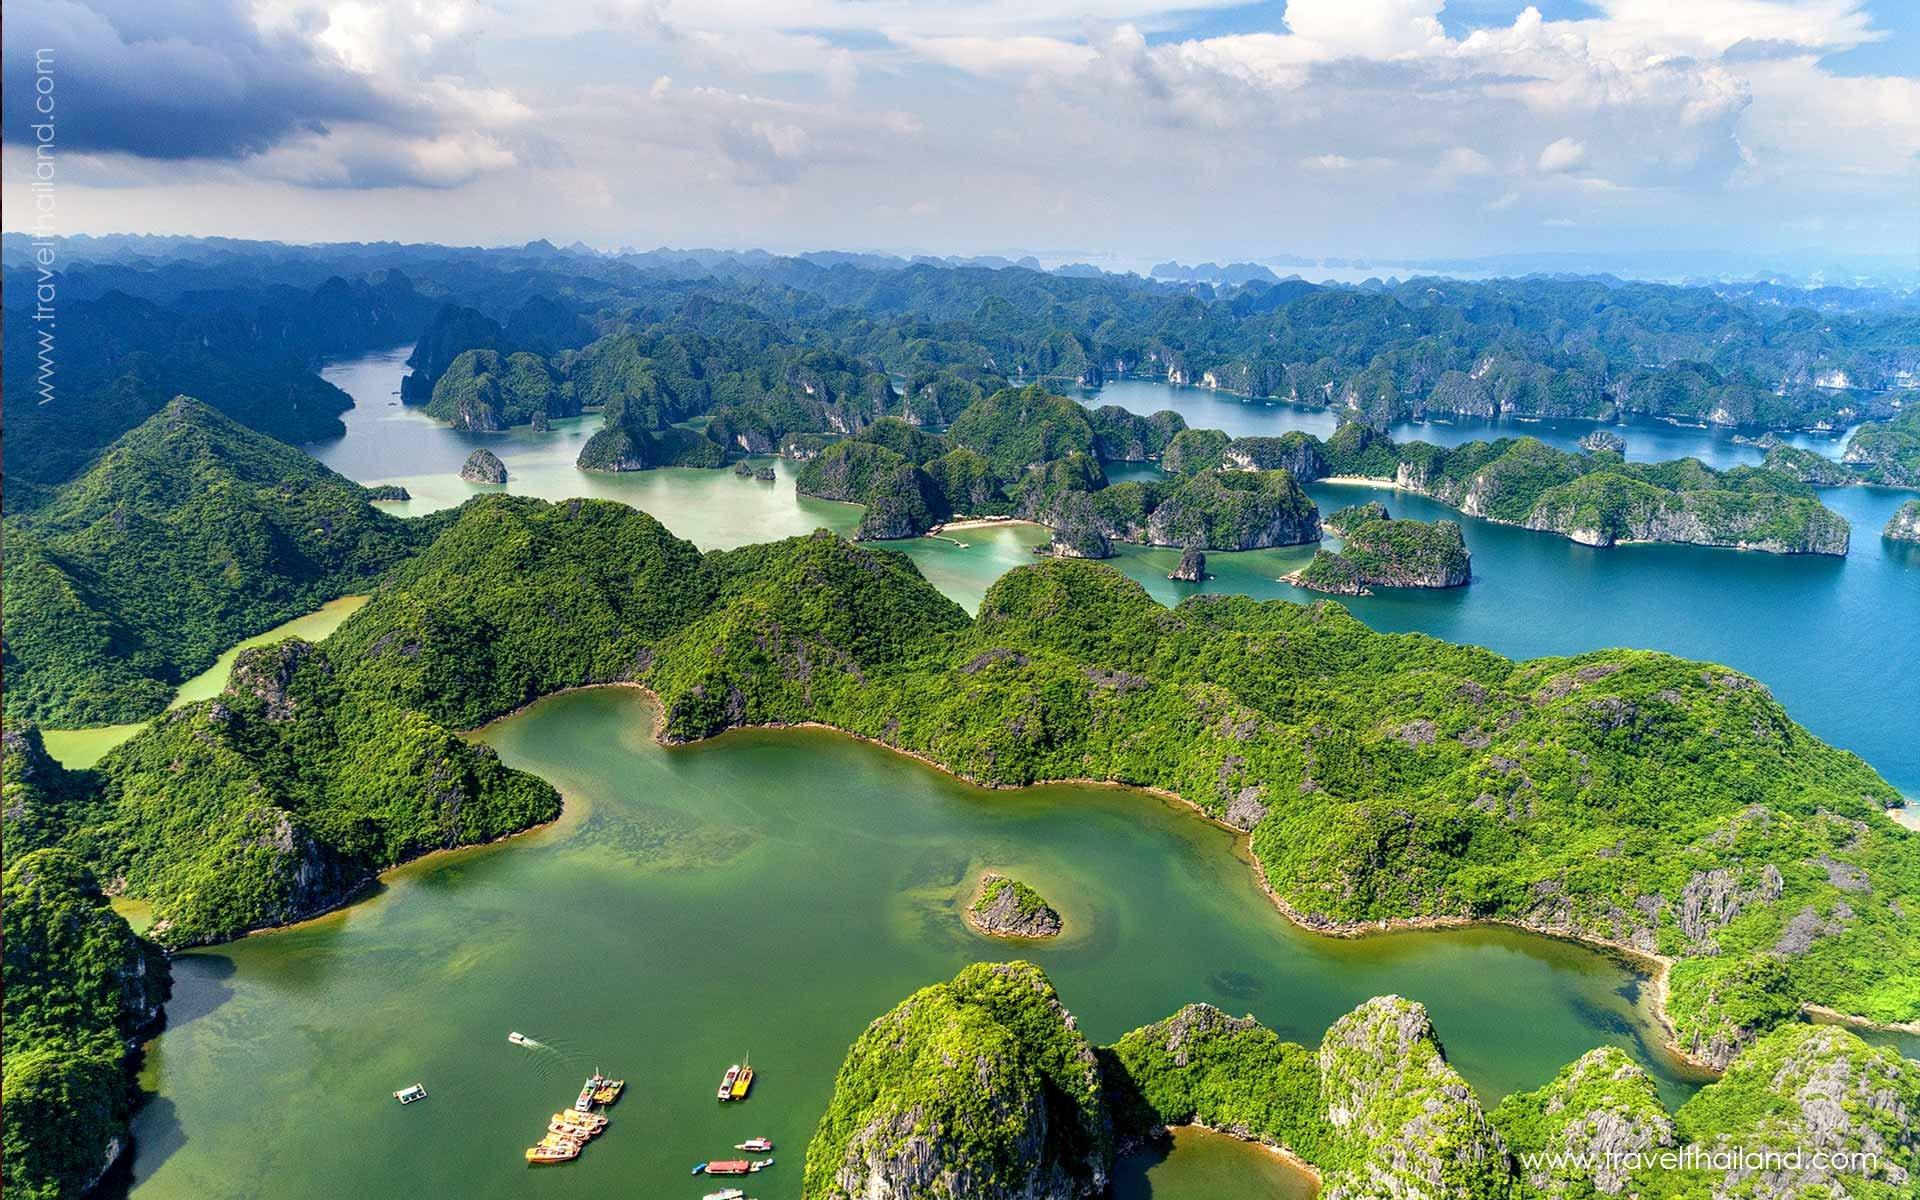 The Very Best of Indochina - 22 days